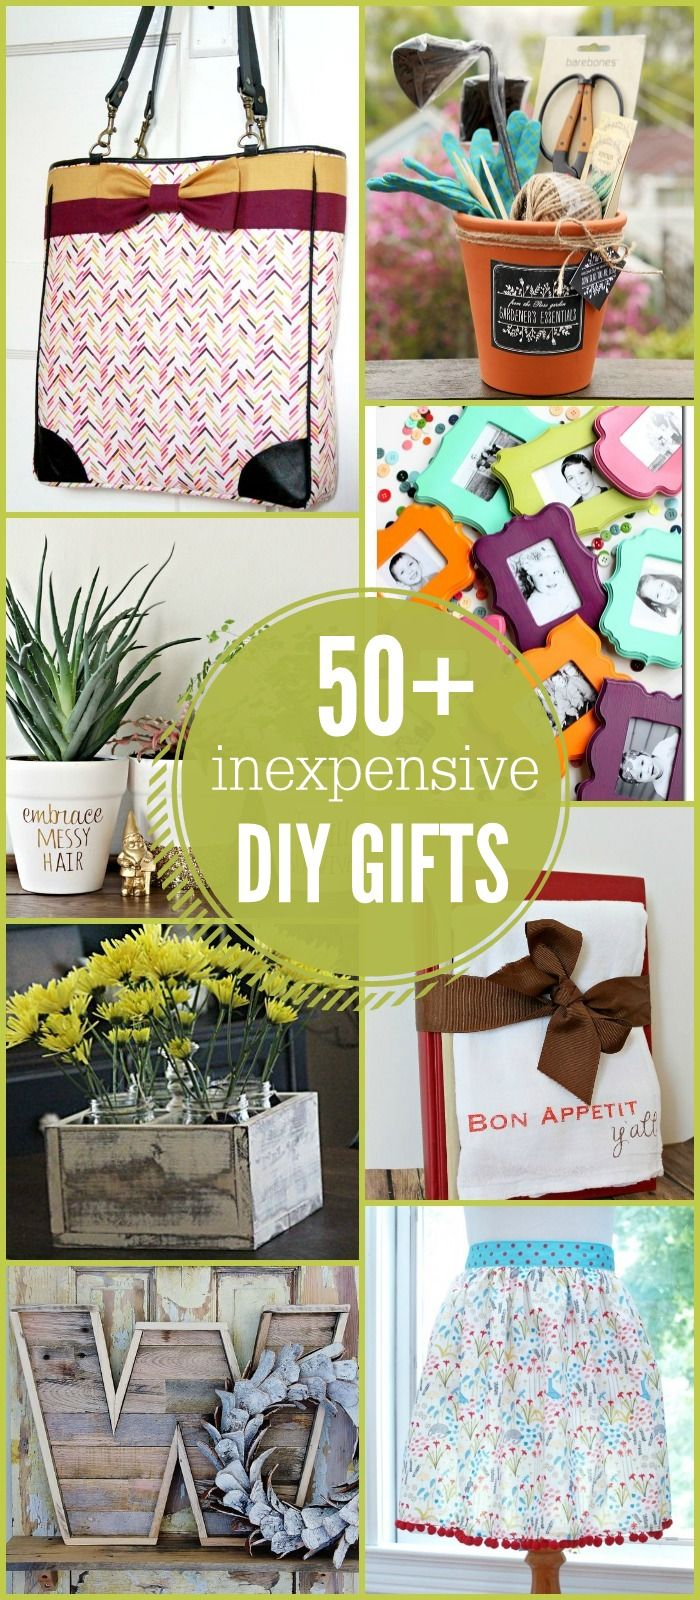 50+ Inexpensive DIY Gift Ideas - so many great ideas!